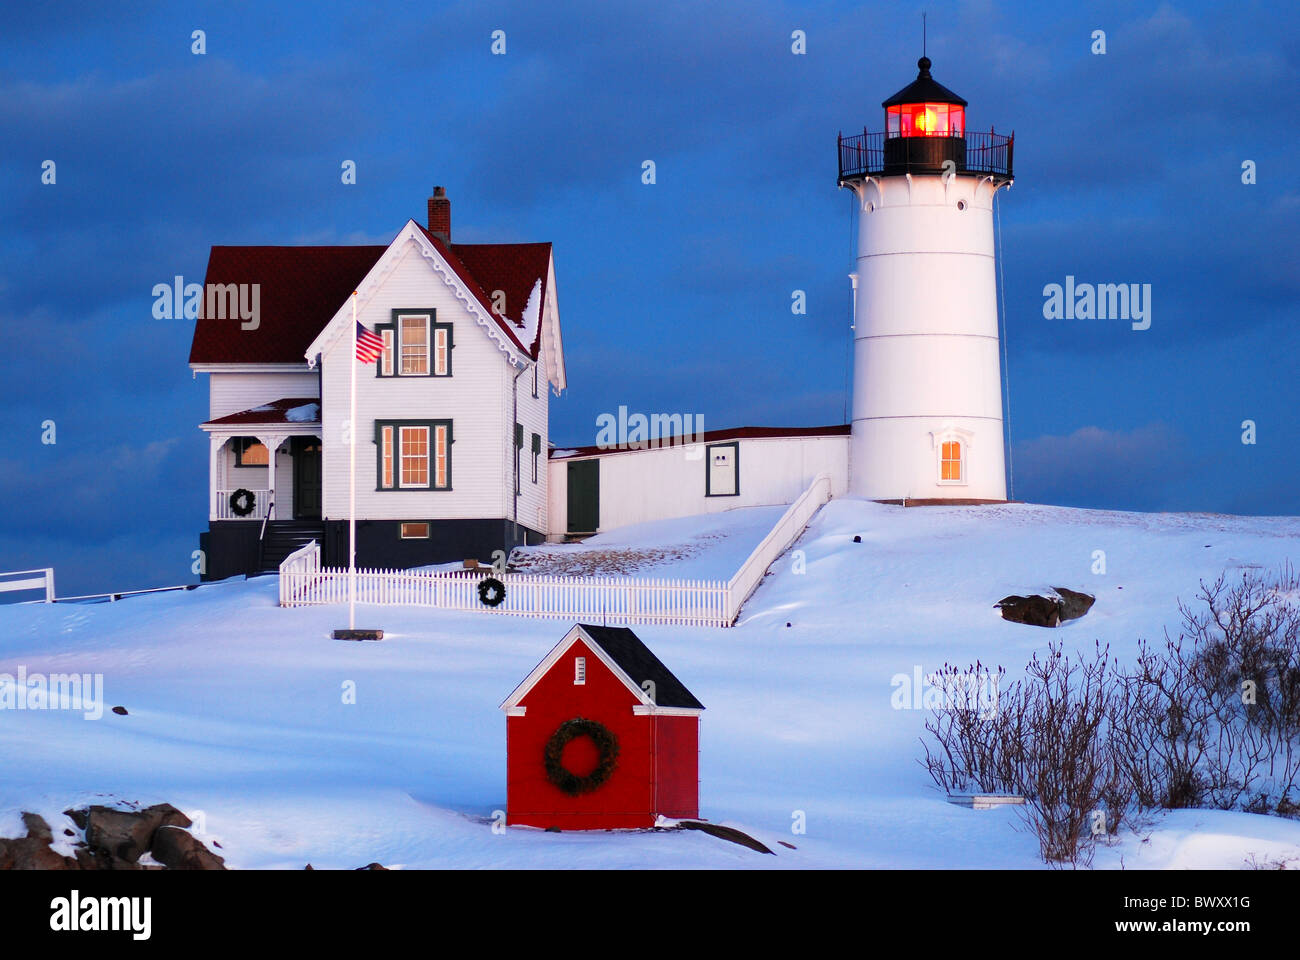 Maine Lighthouse Snow Stock Photos & Maine Lighthouse Snow Stock ...